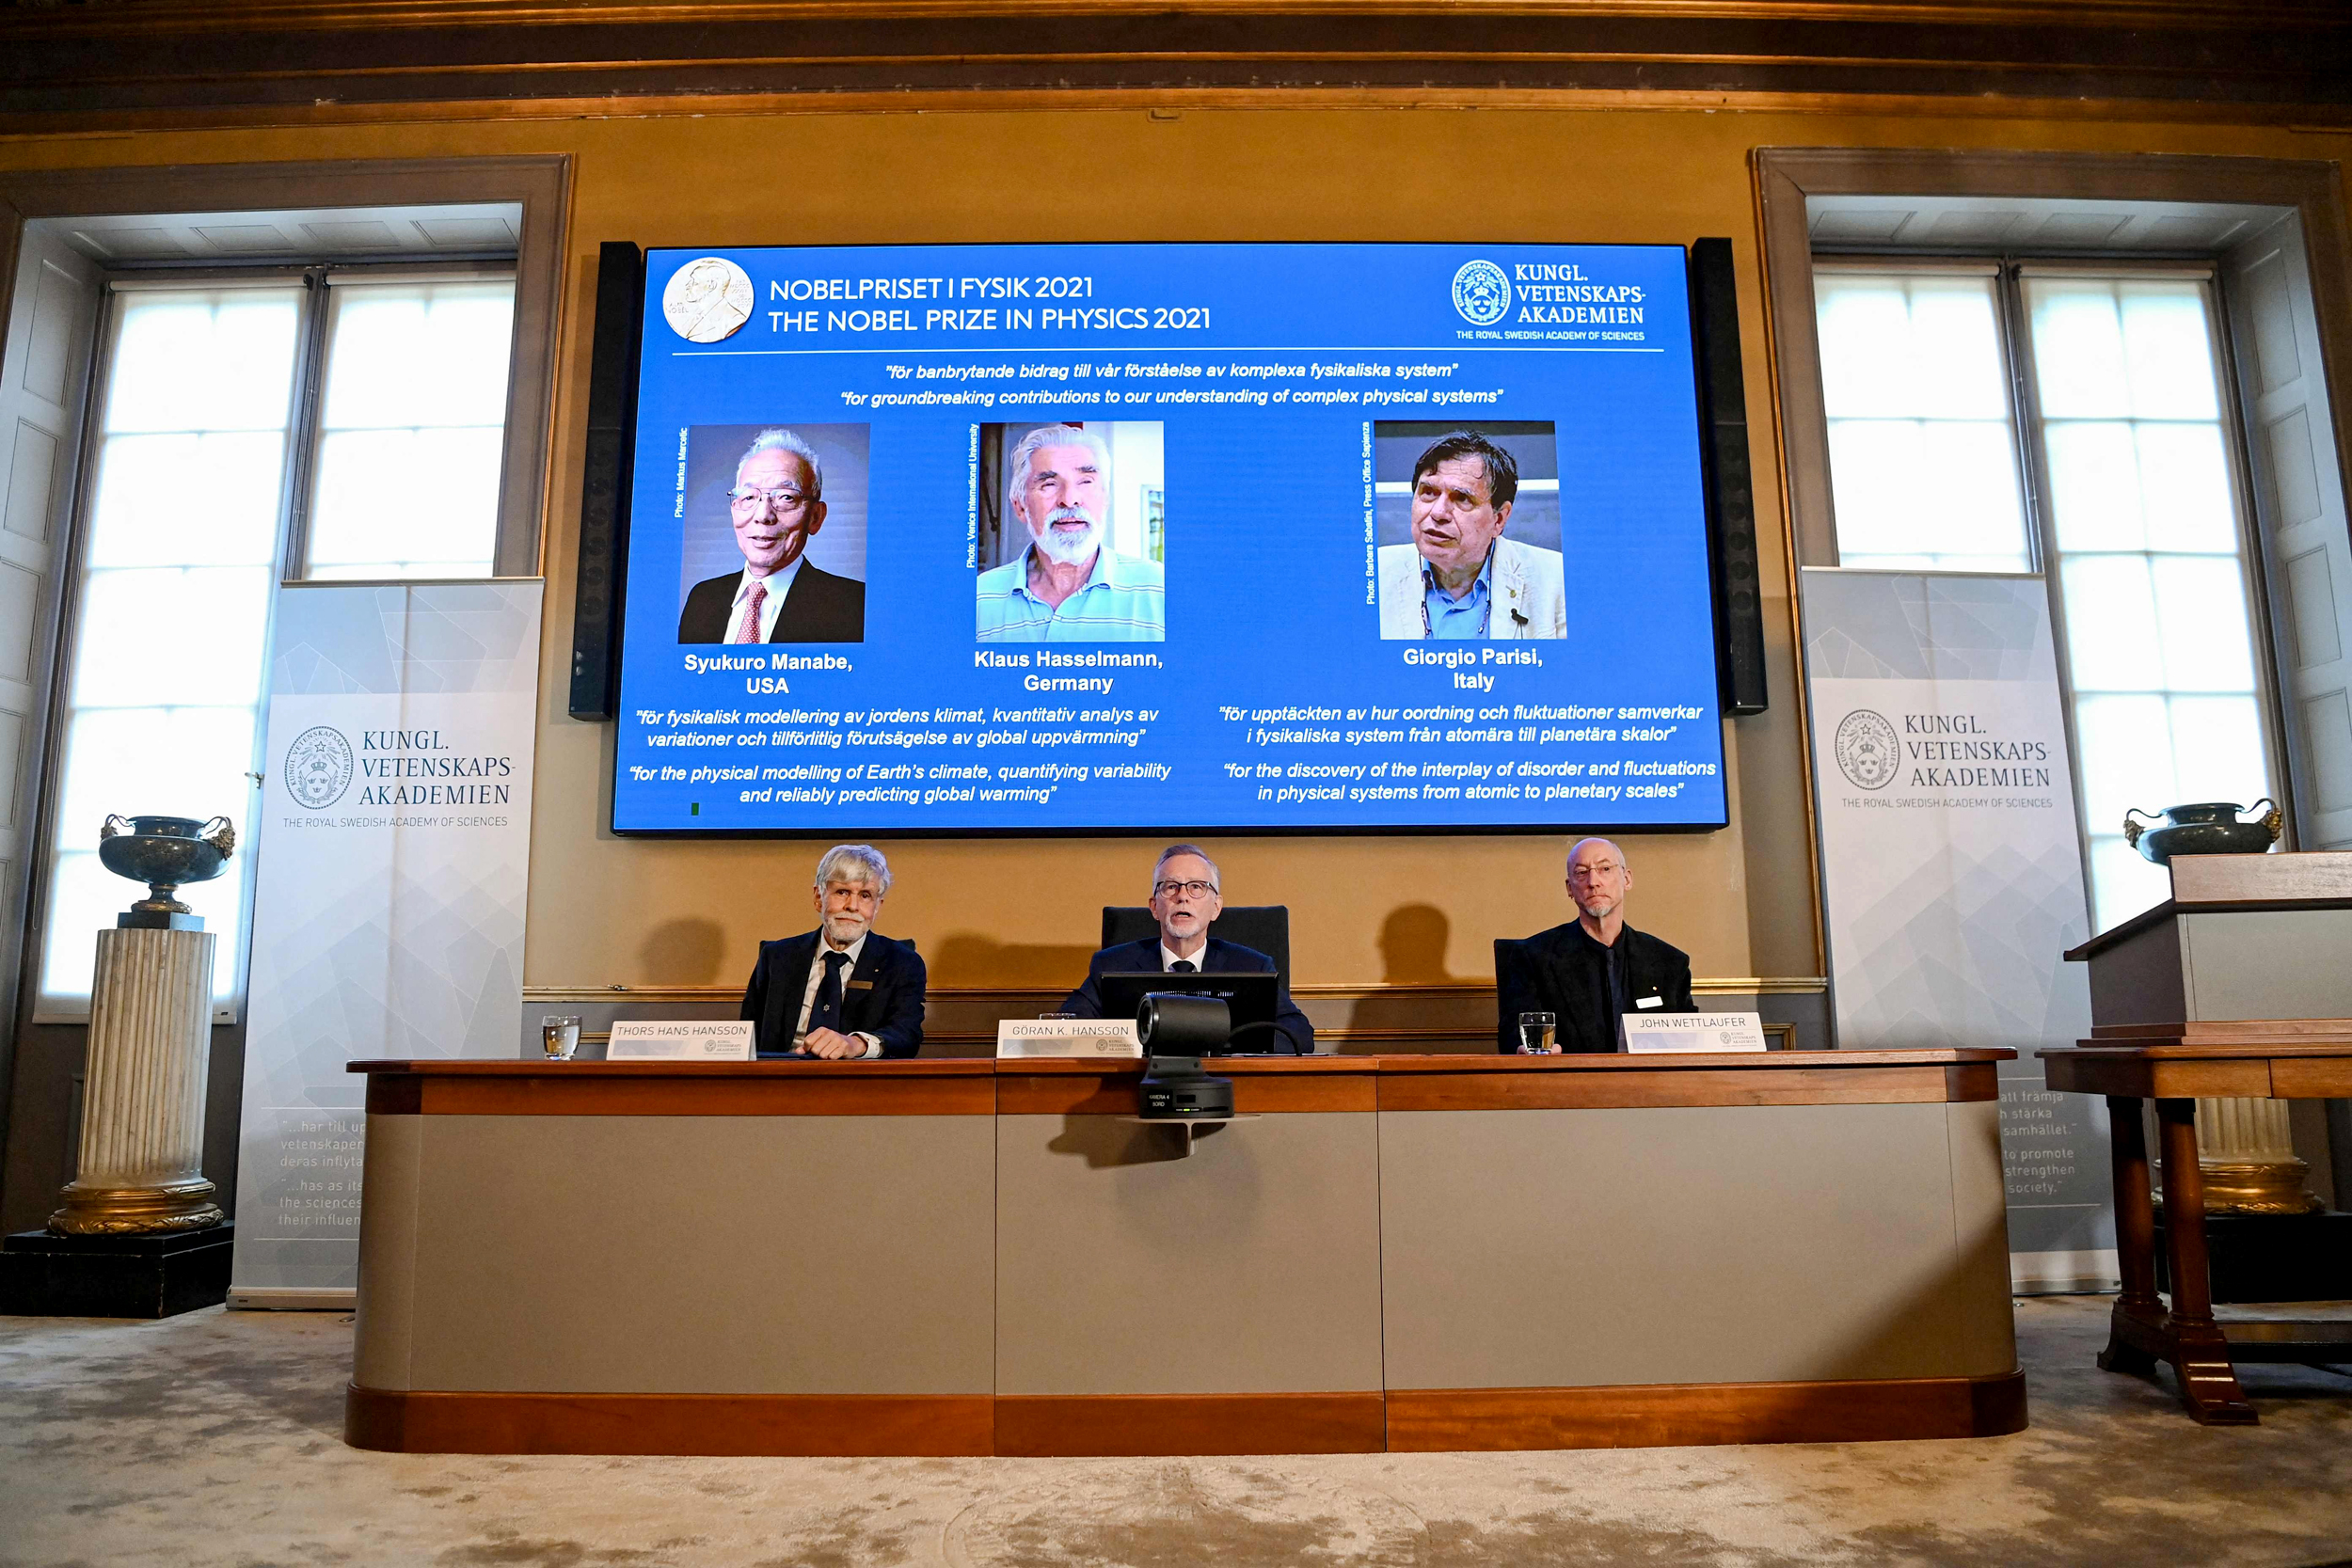 Physics Nobel awarded to scientists who helped in understanding of 'complex physical systems'